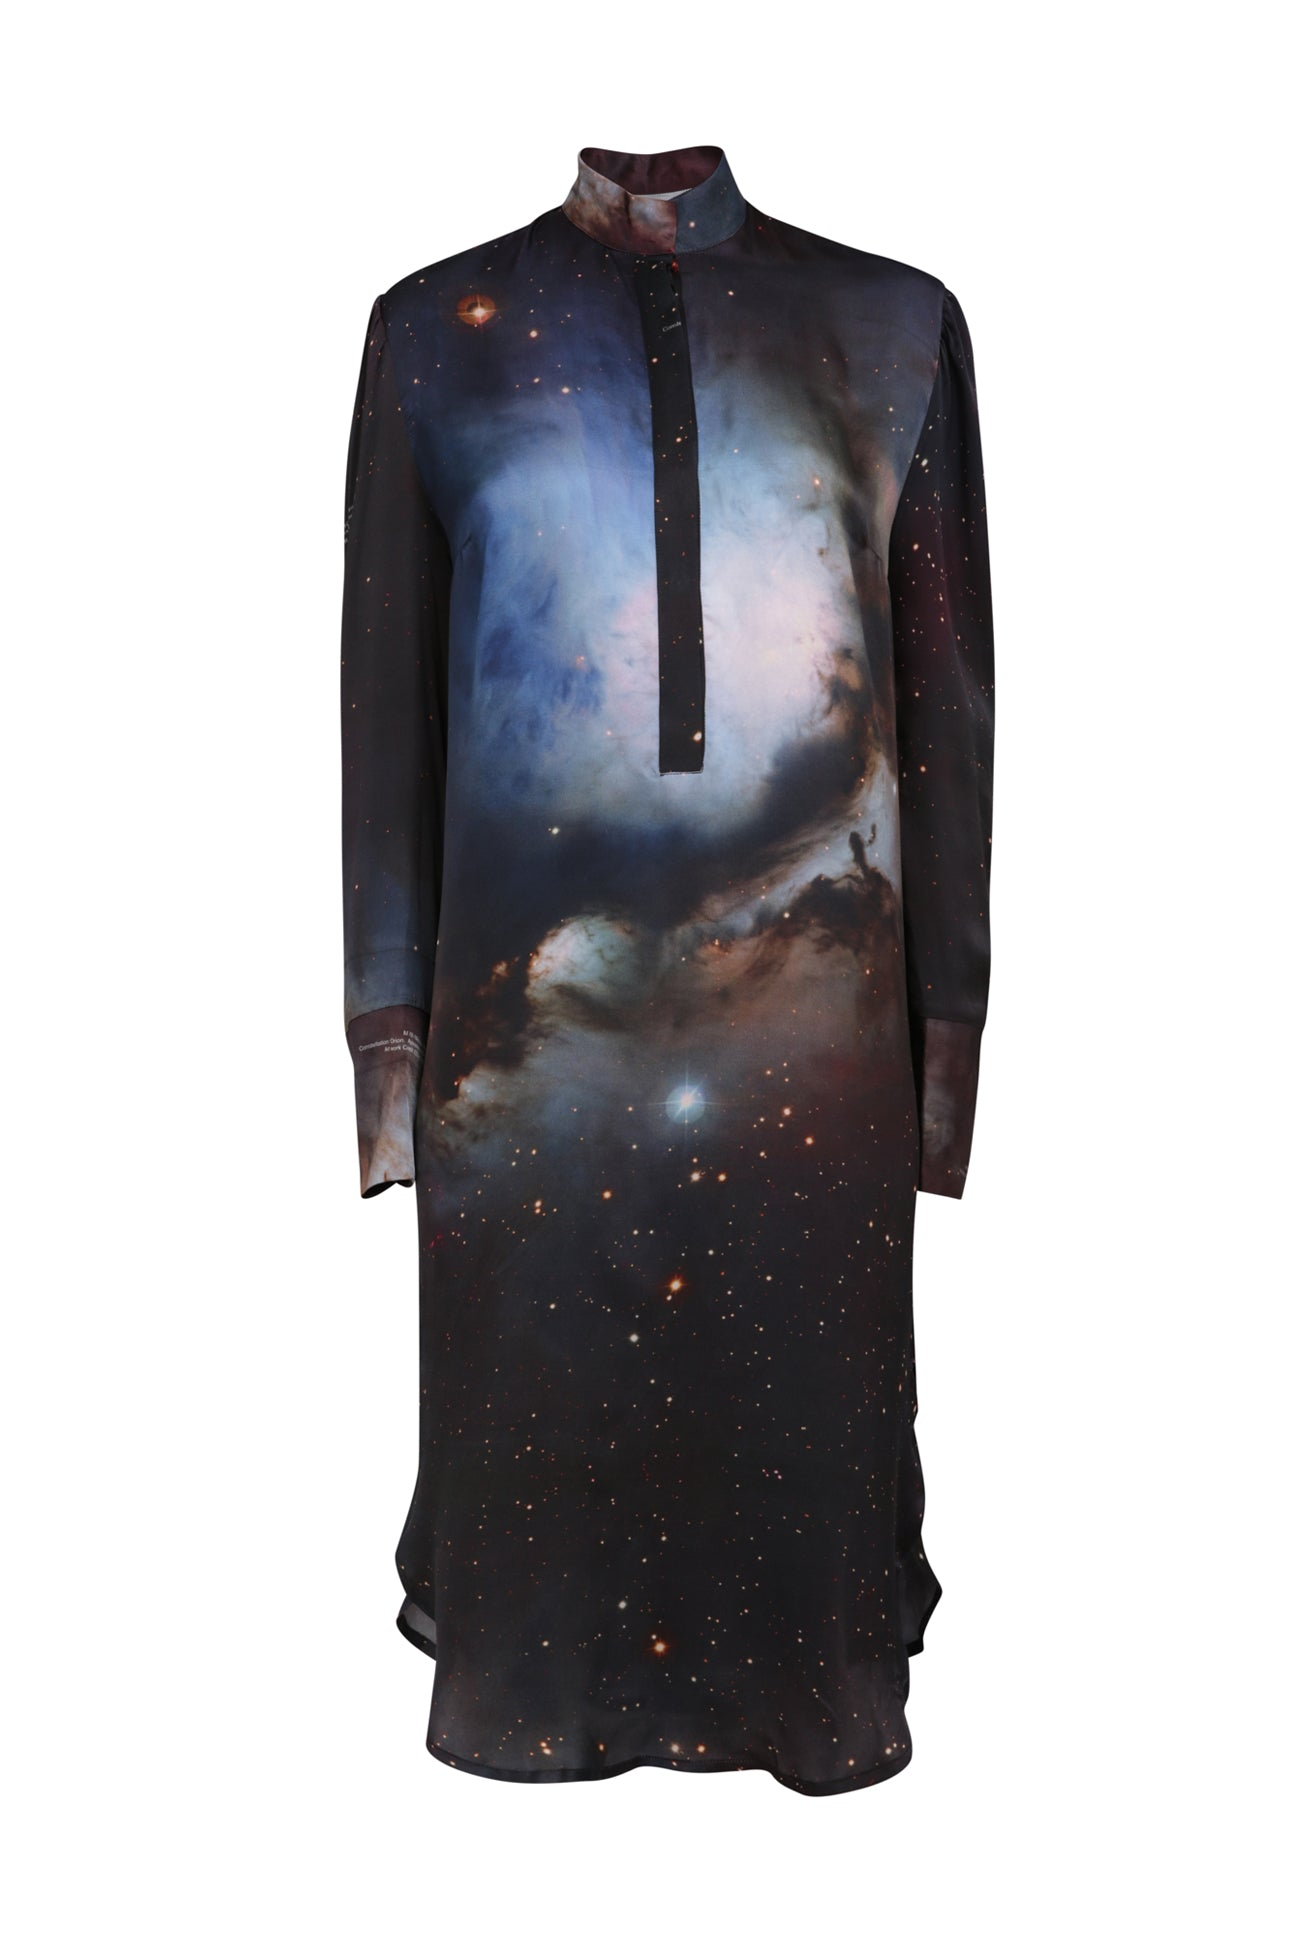 7.2 Messier Shirt Dress